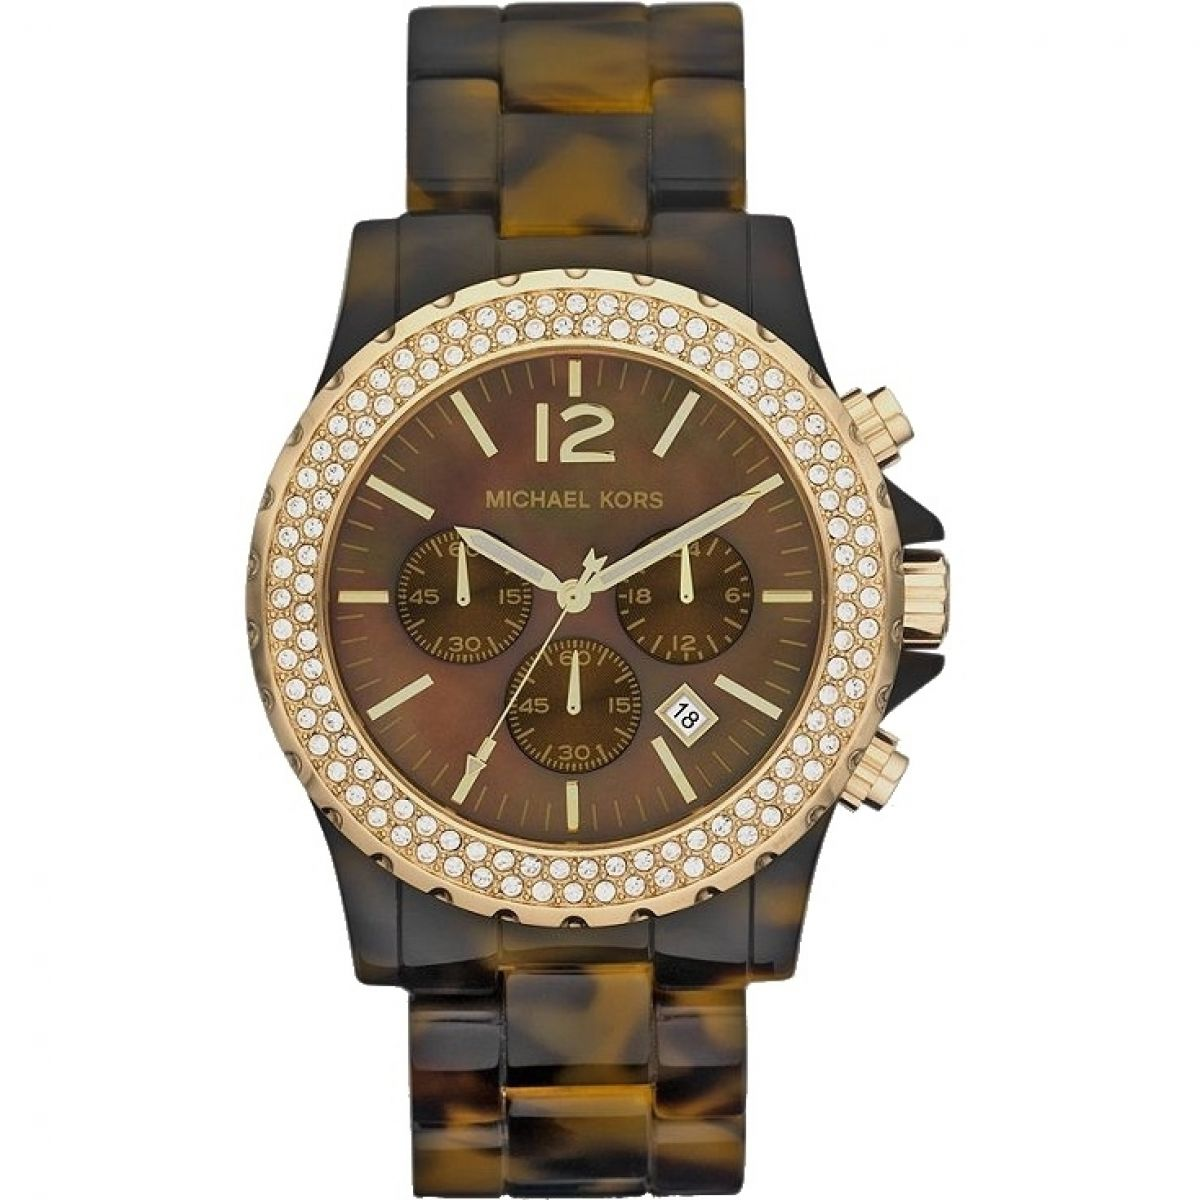 Michael Kors Chronograph Women's Watch